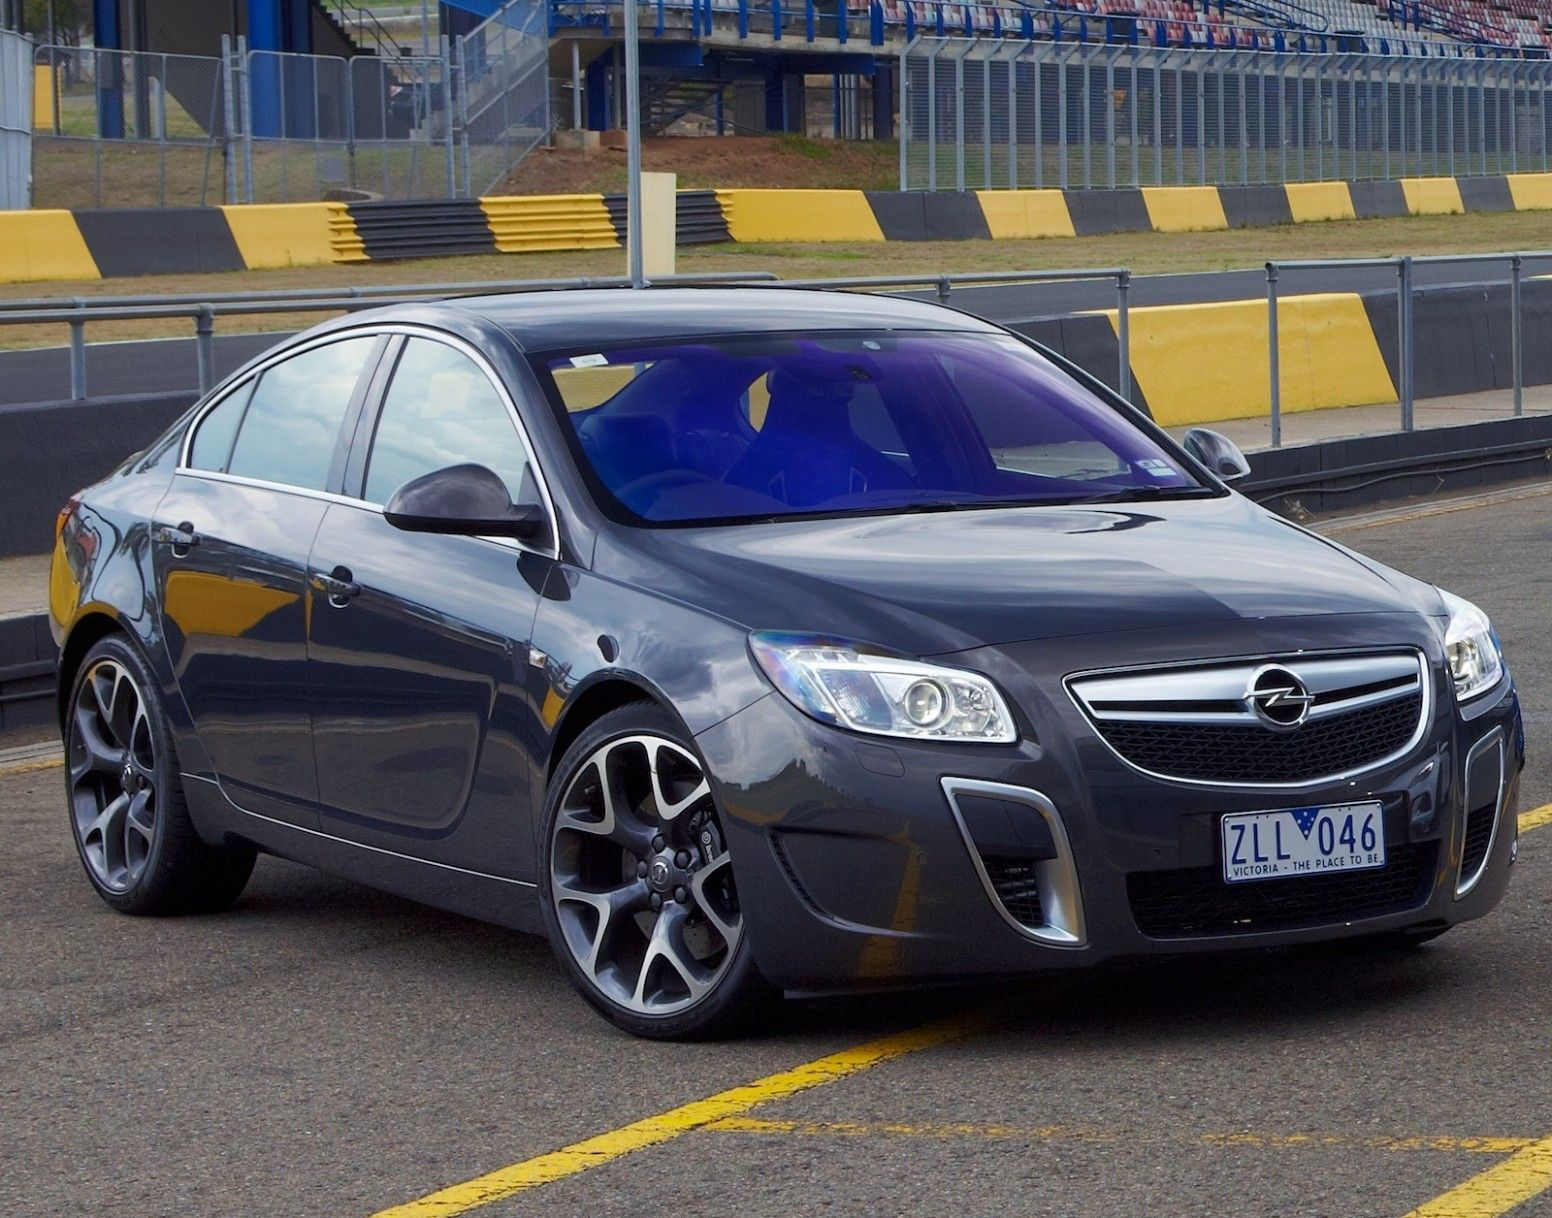 2020 Opel Insignia Opc Images Vauxhall Insignia Vauxhall Car Collection